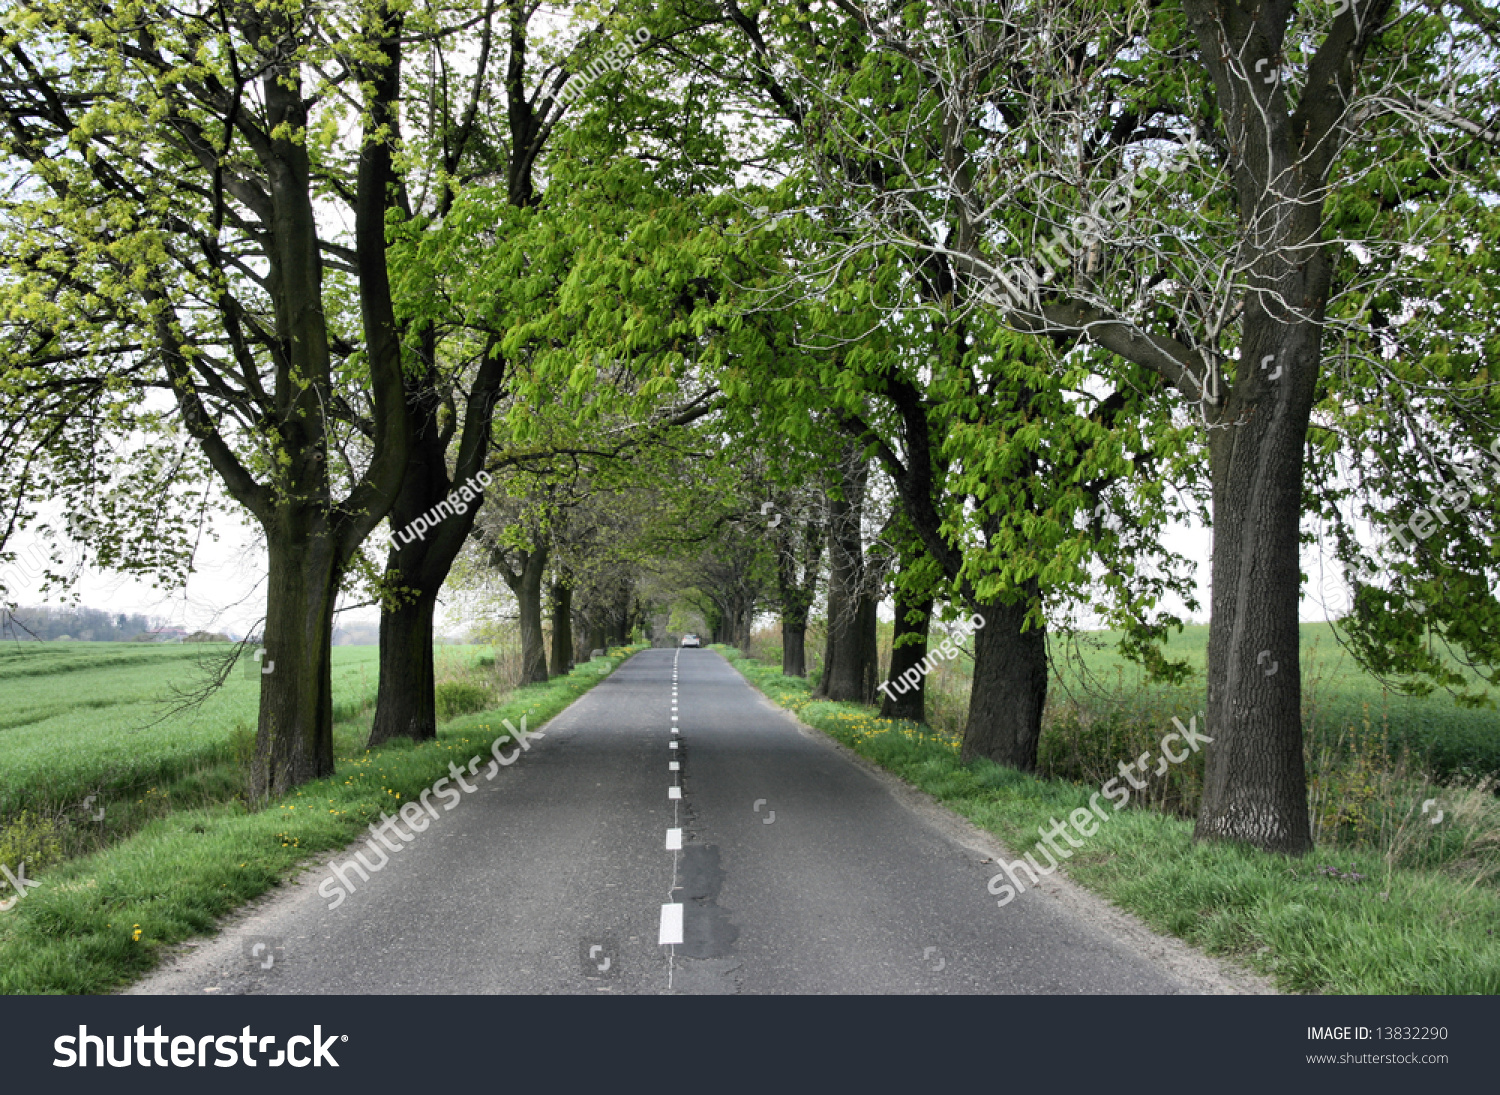 Straight Road Under Trees Polish Countryside Stock Photo 13832290 ... for Straight Road With Trees  104xkb